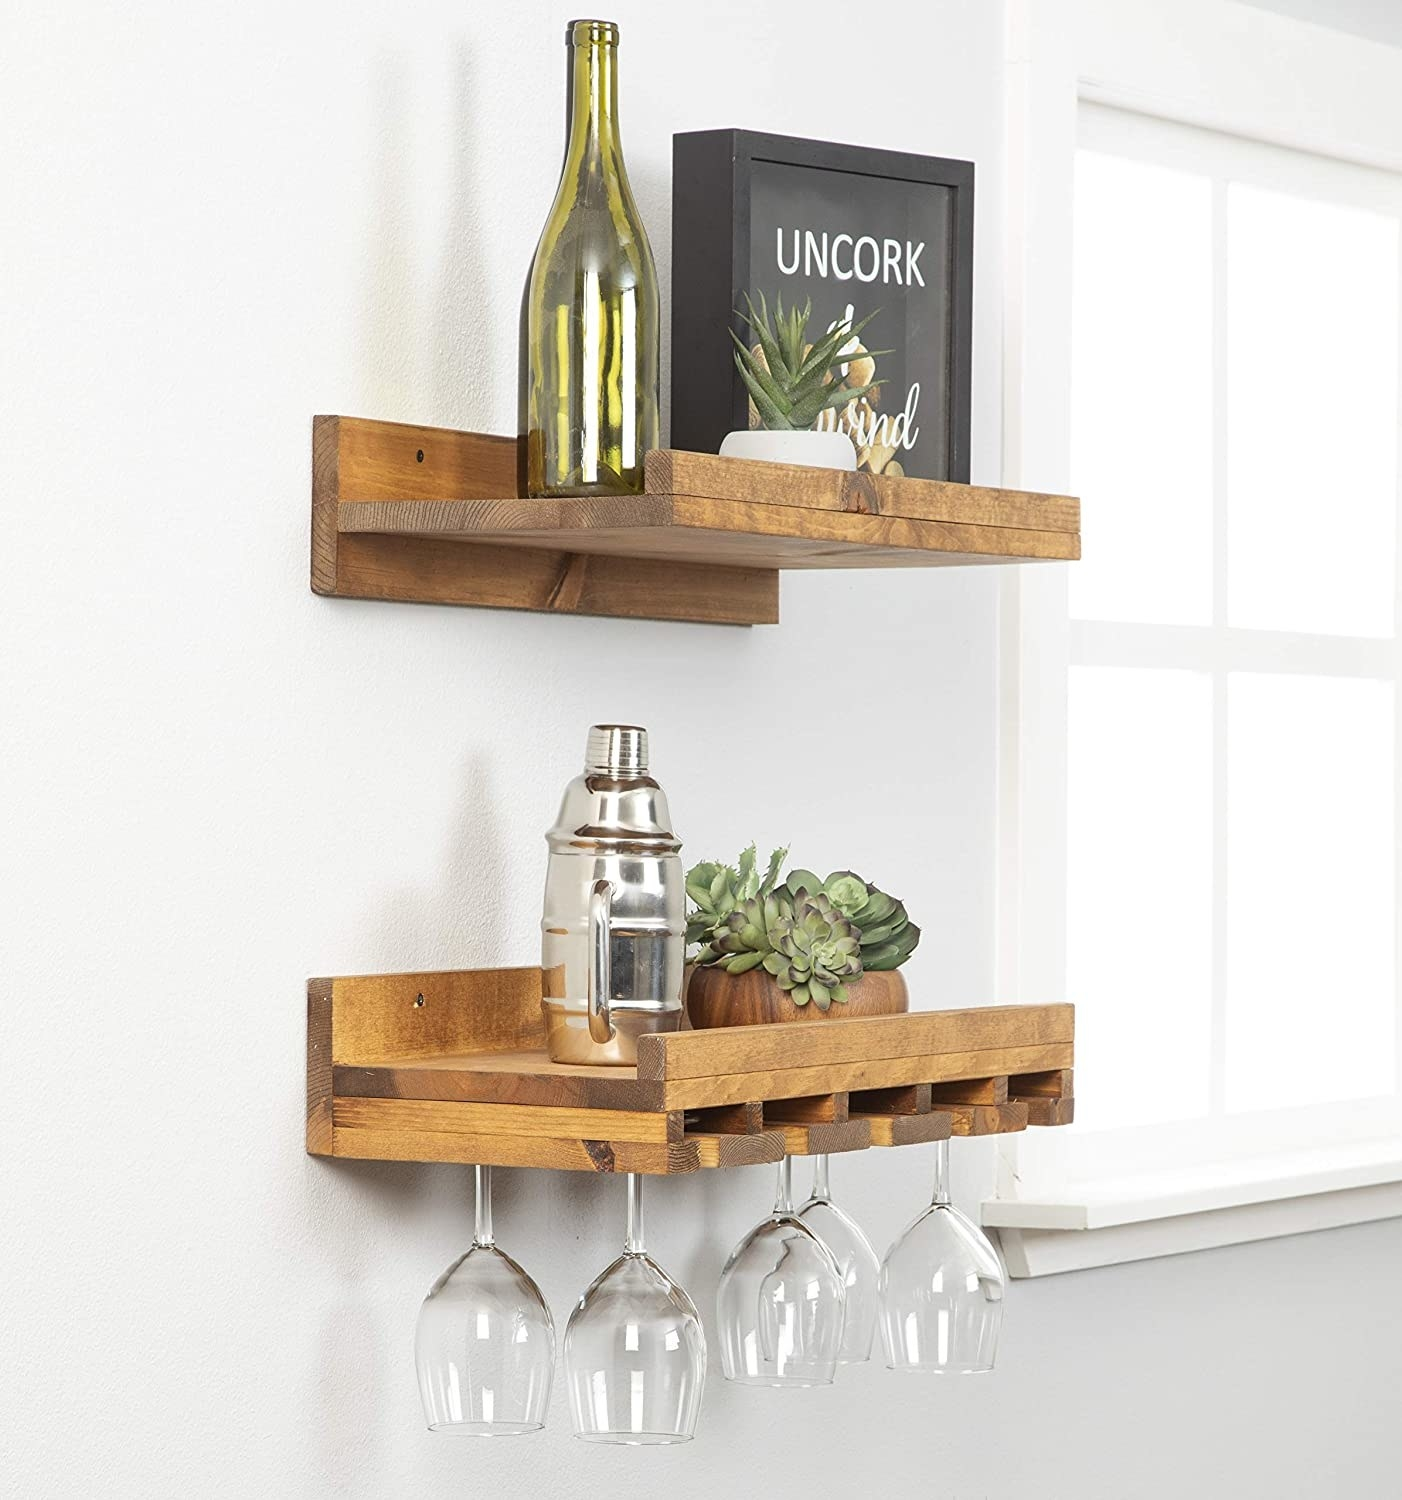 Two rough-edged wood shelves: one standard, lipped shelf and one with added panels to hold up to six wine glasses